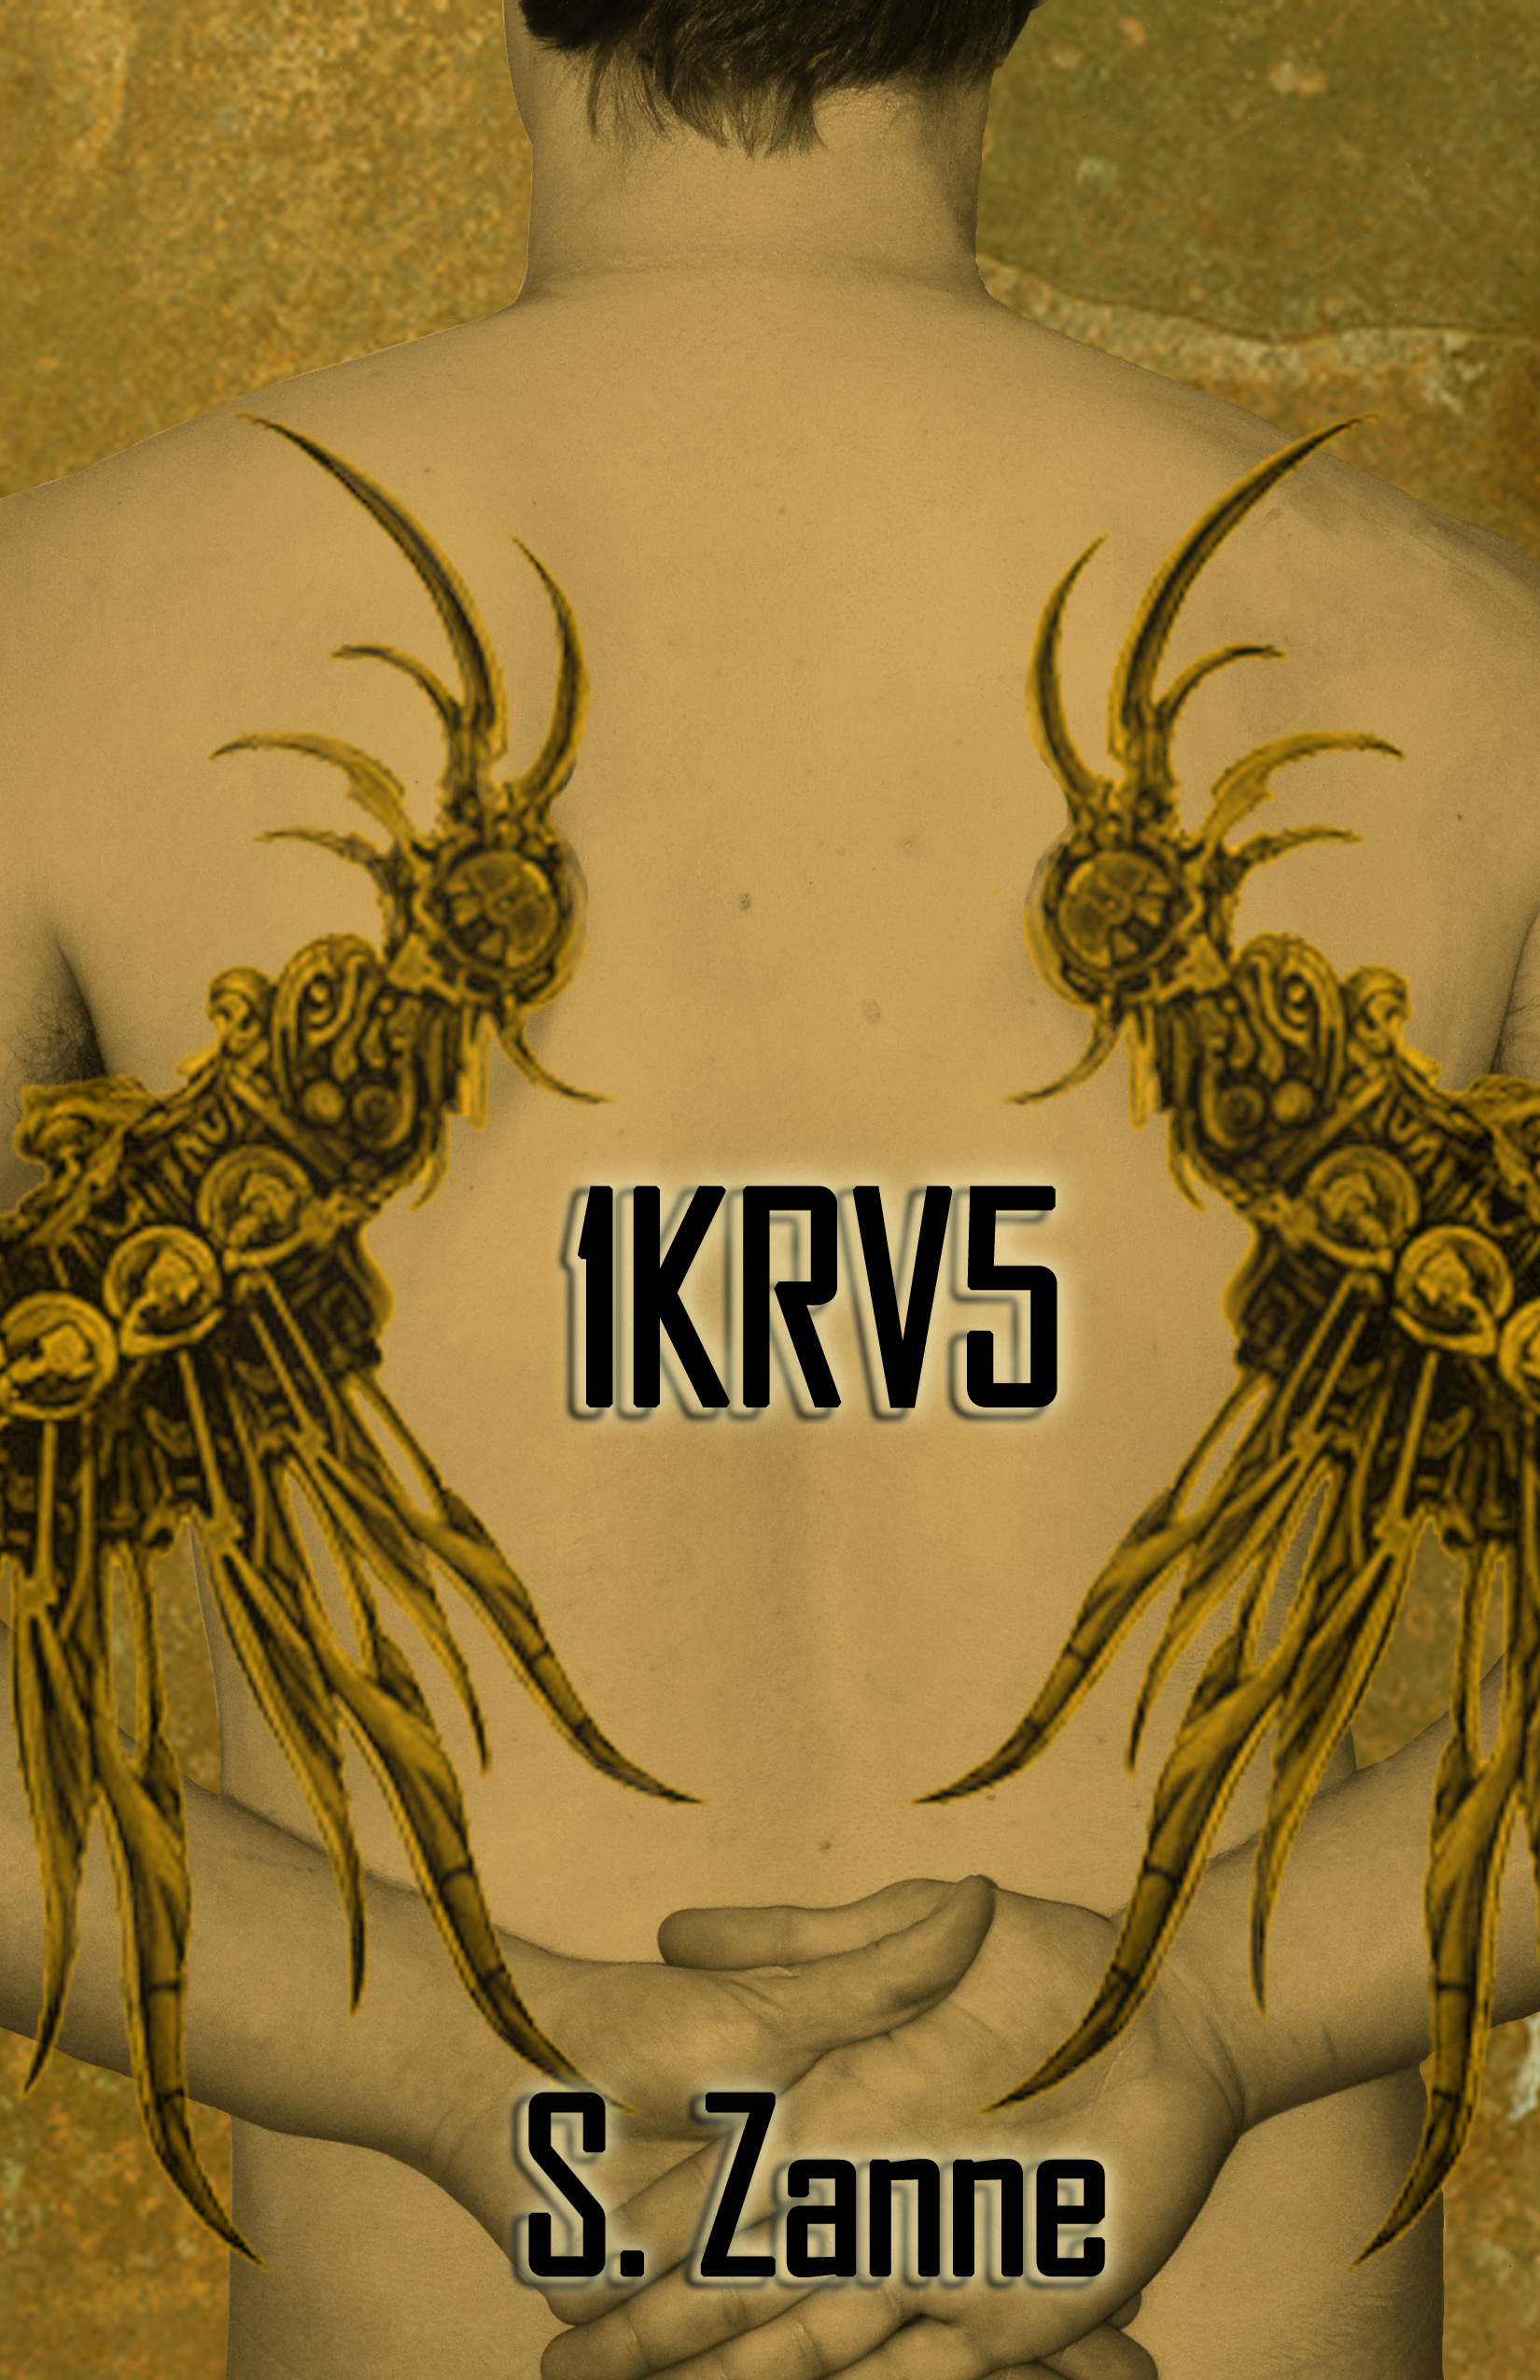 1krv5 front cover